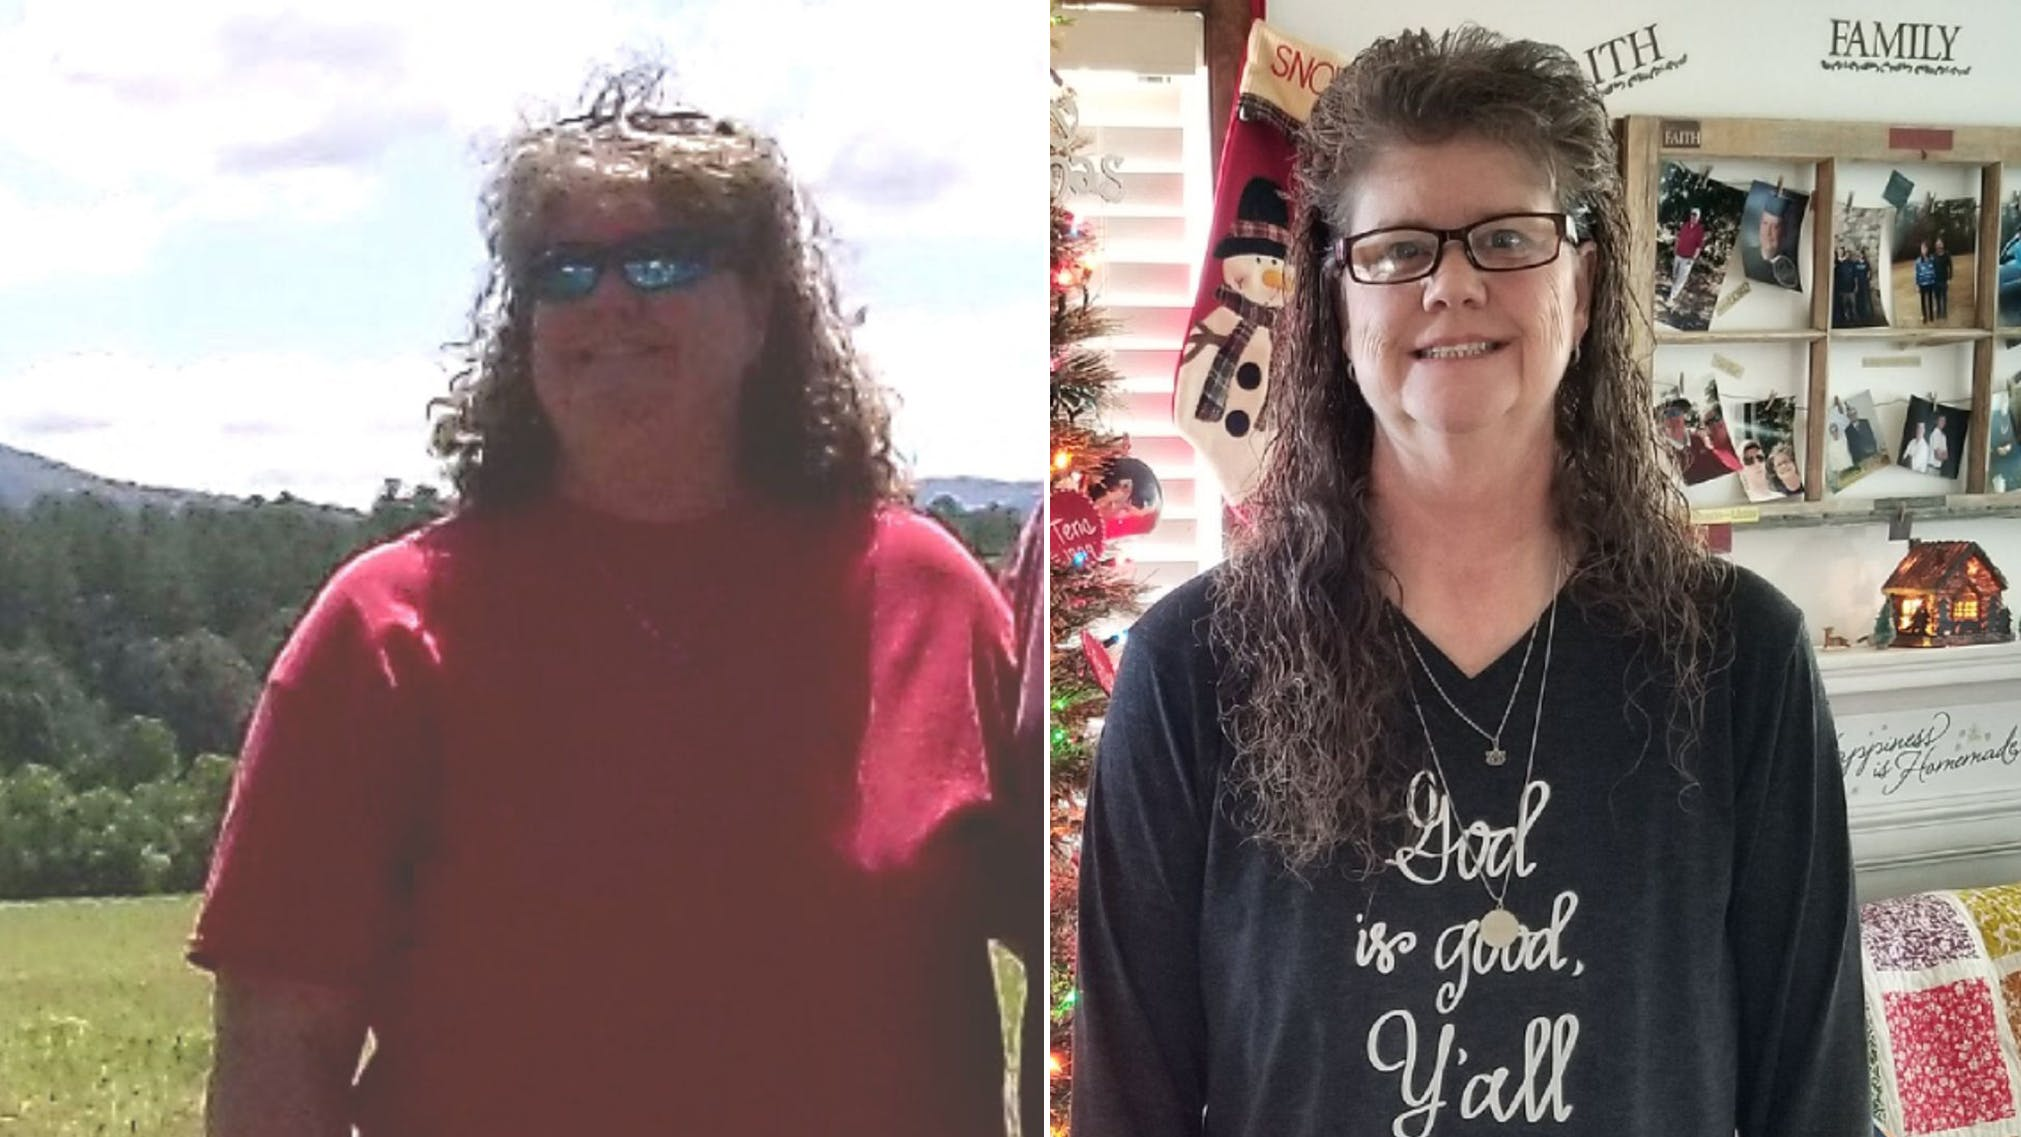 Woman who had 'accepted her overweight' loses 125 pounds on low carb